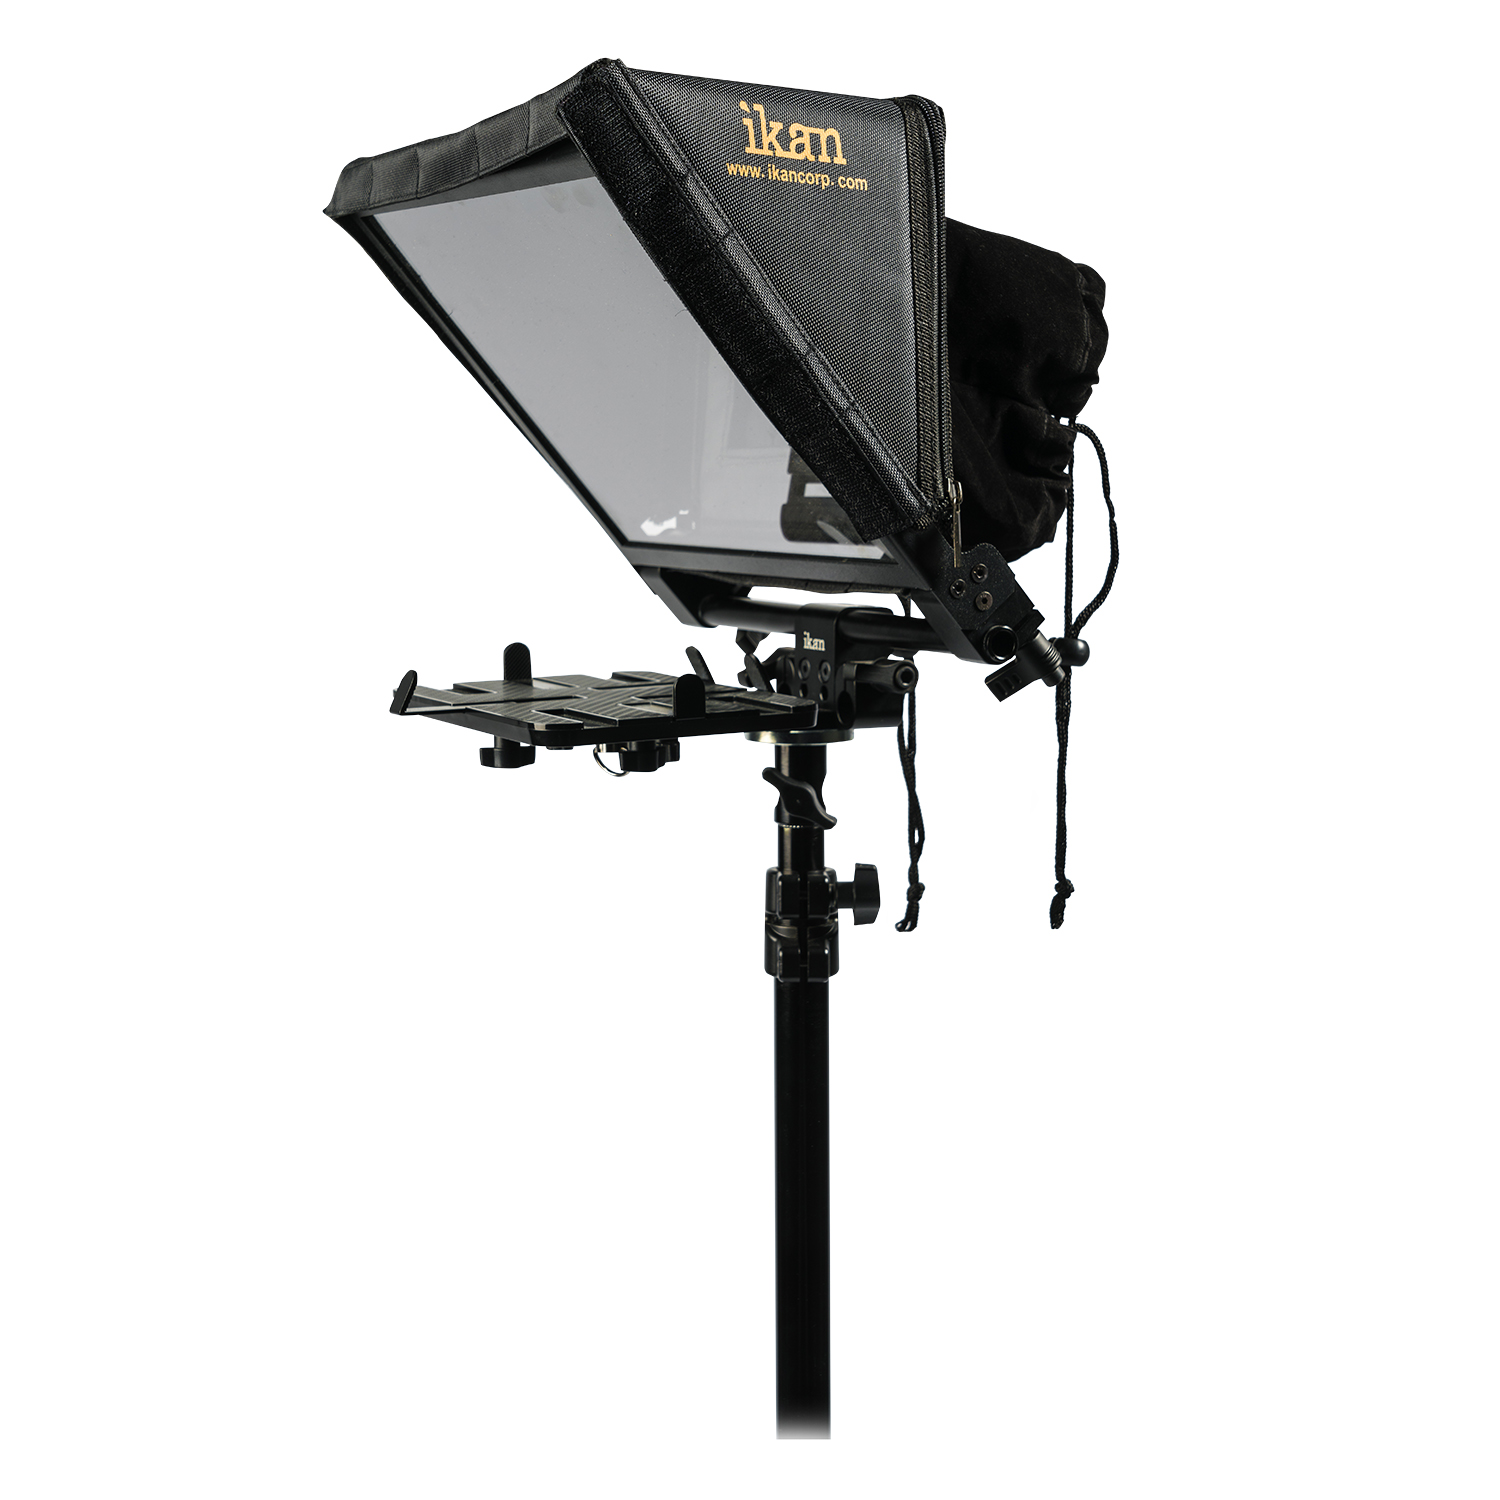 Teleprompter Features 3